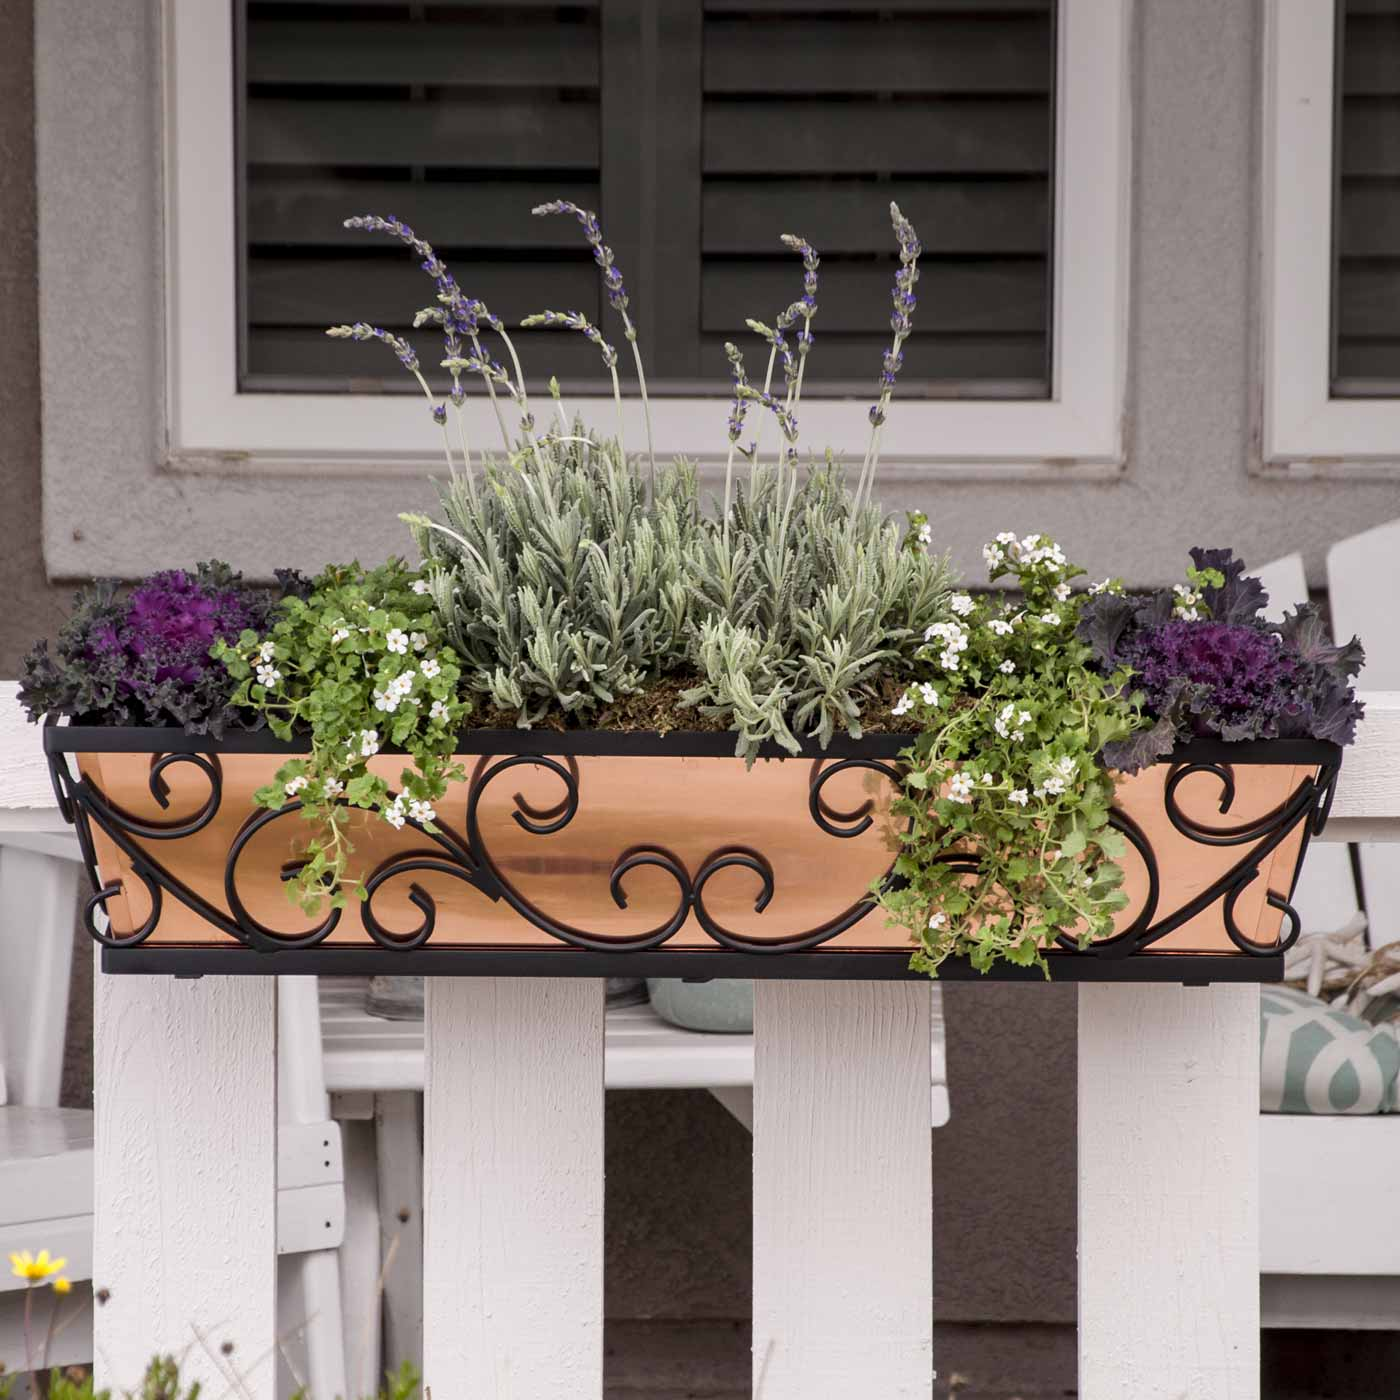 Planters For Railings Hooks: Decora Wrought Iron Flower Boxes